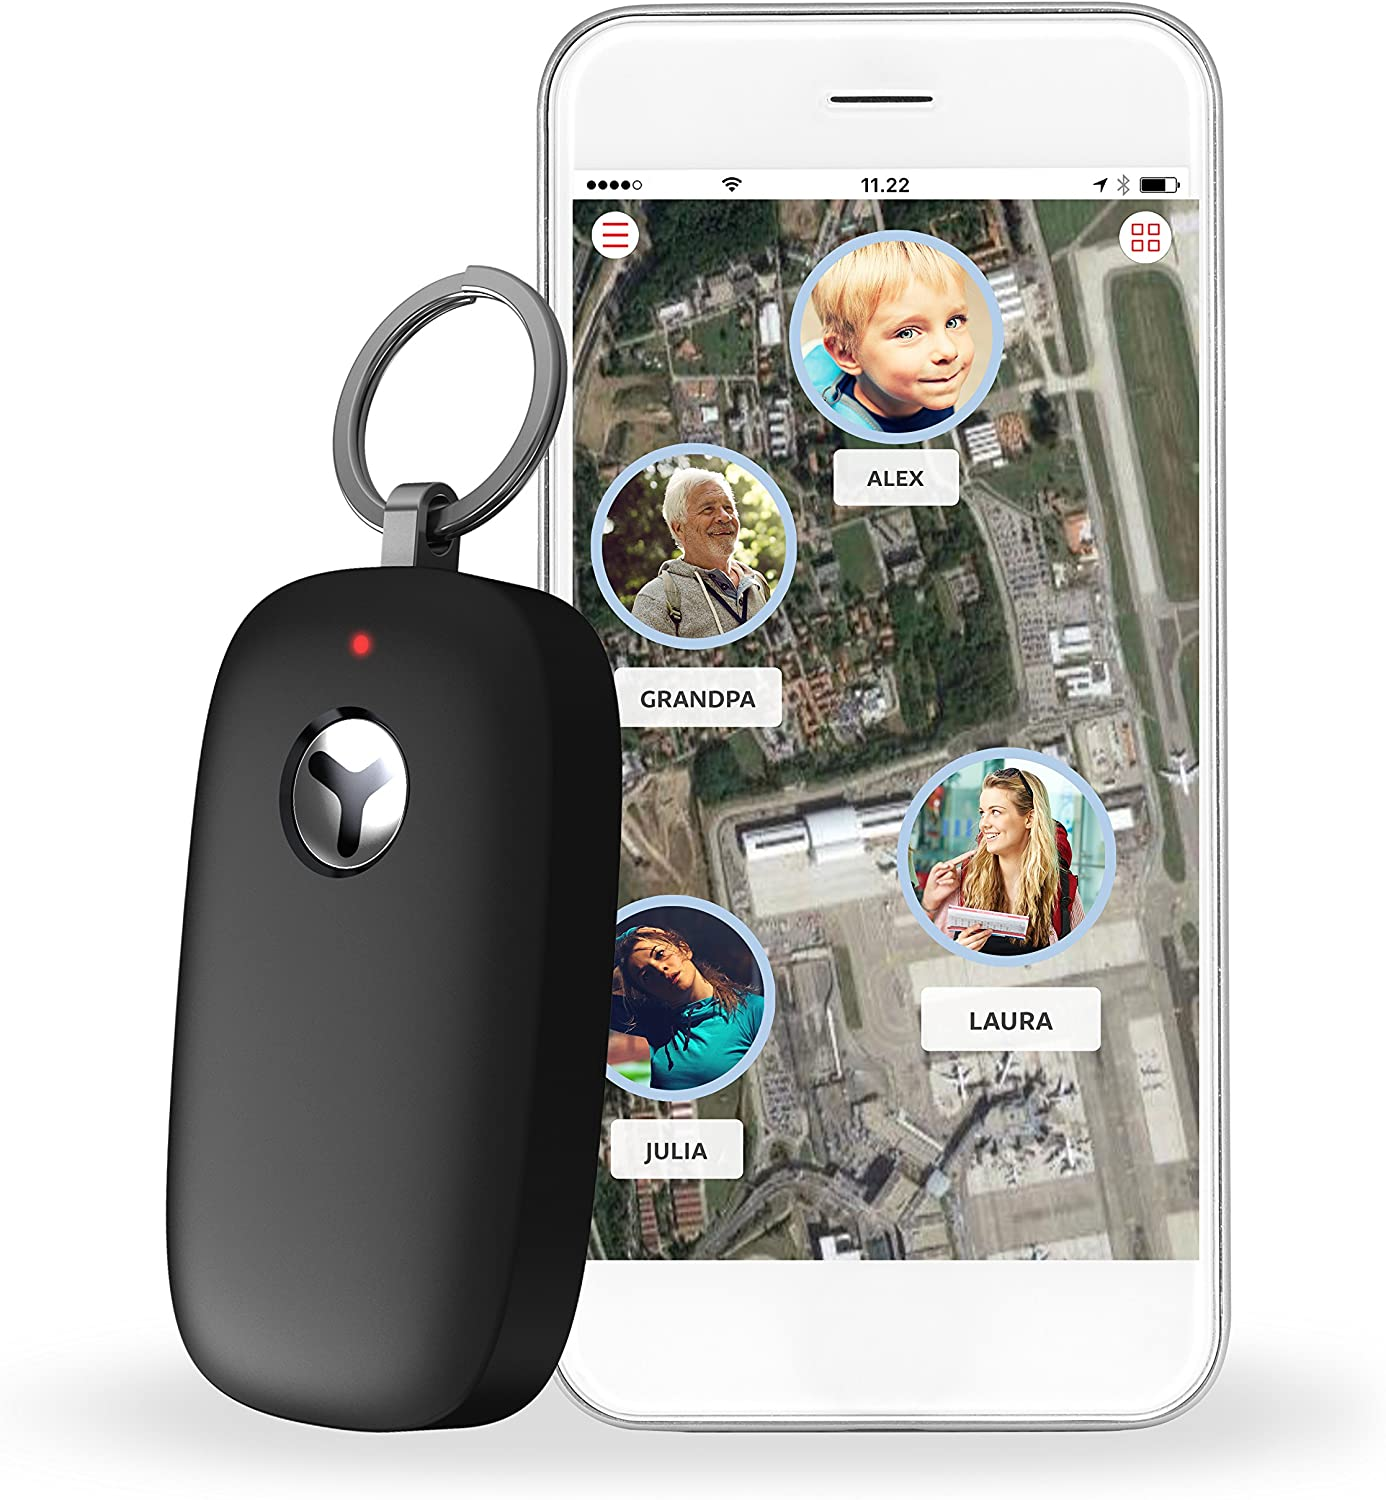 Yepzon Freedom GPS tracker with SOS button for Elderly